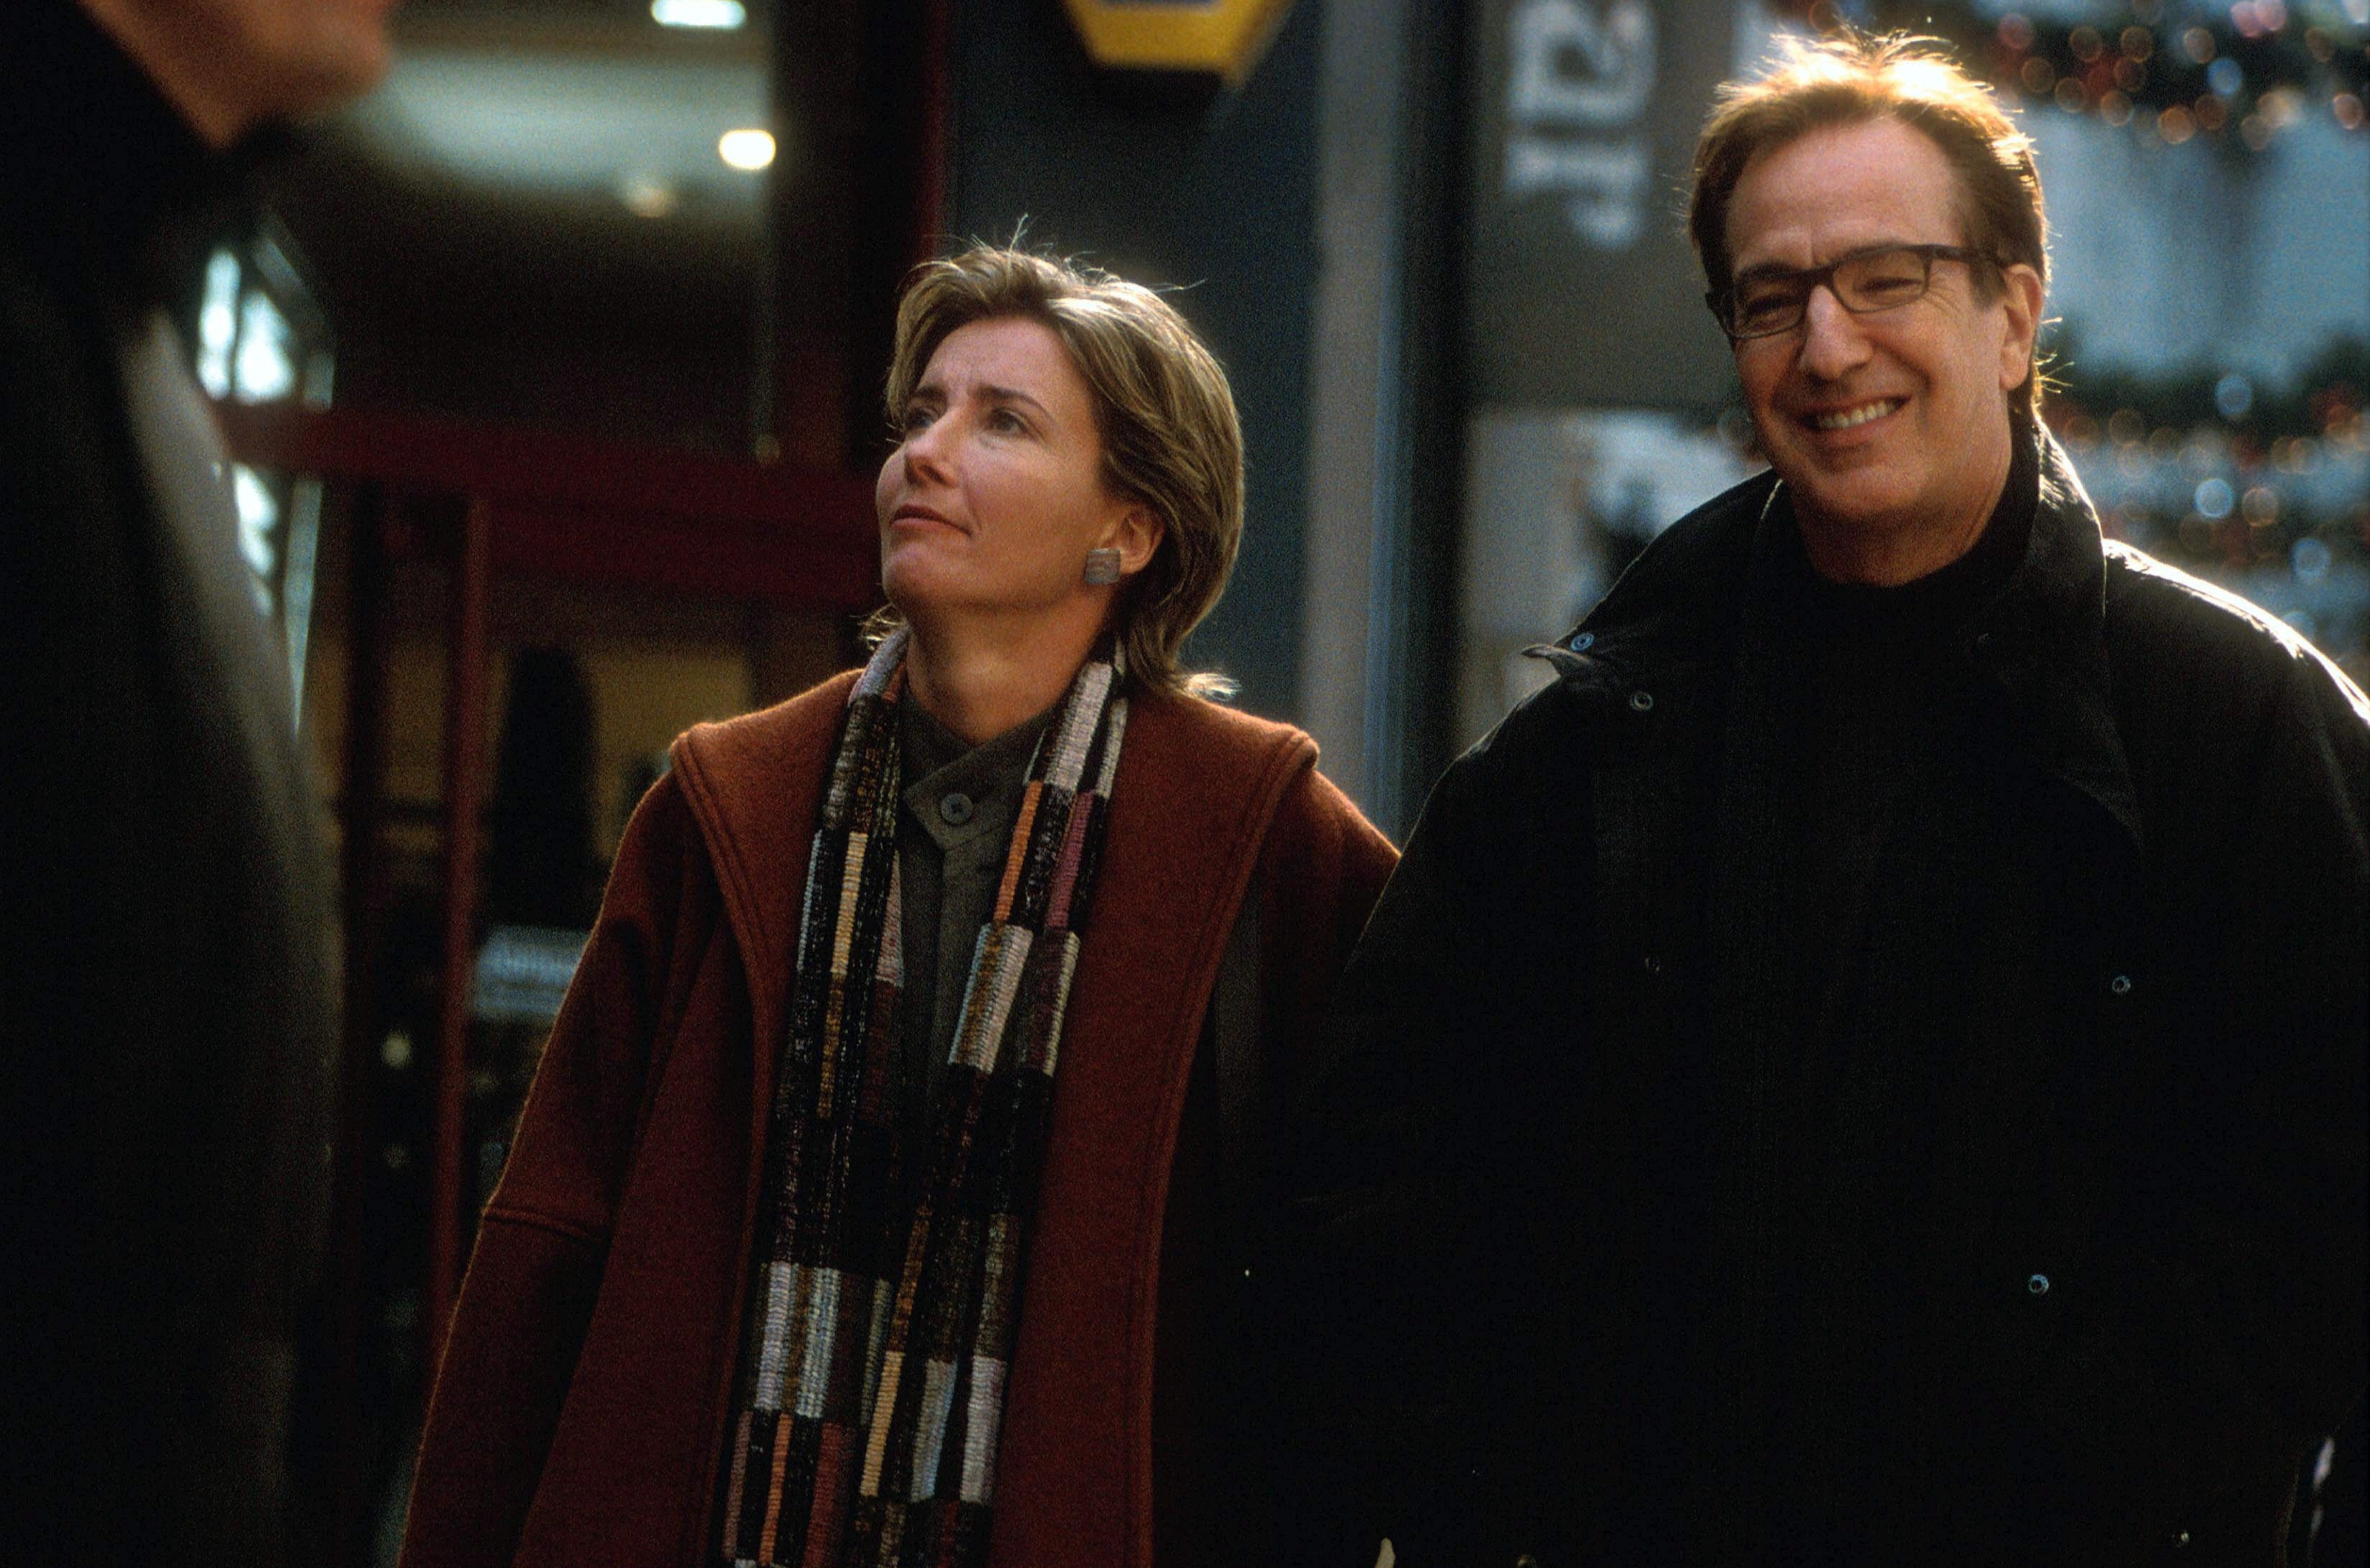 Emma Thompson and Alan Rickman in Love Actually, 2003.